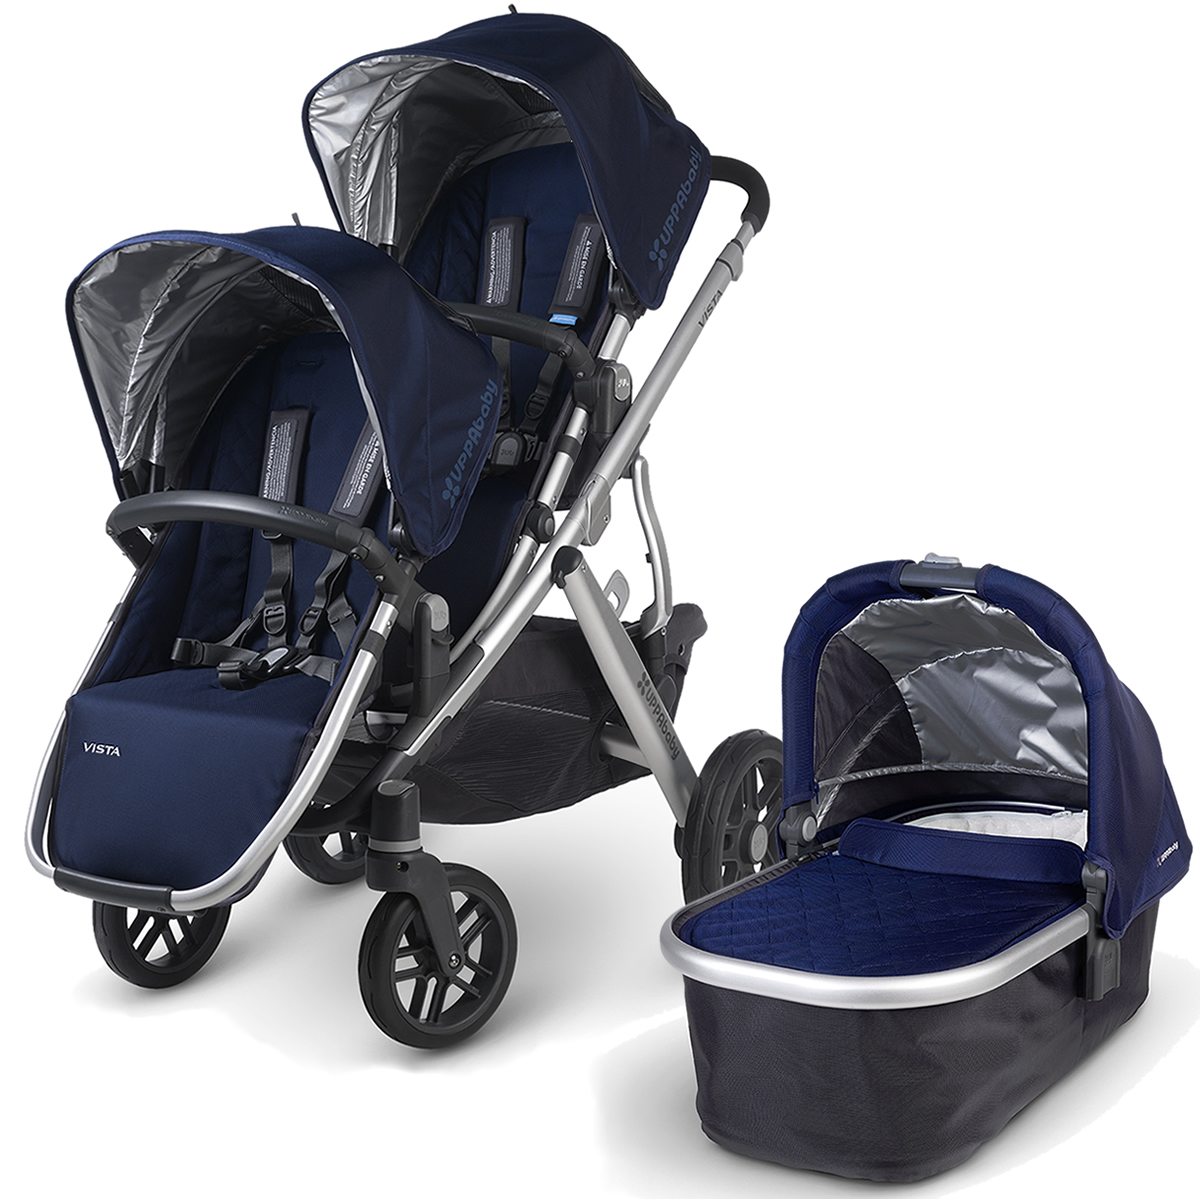 Uppababy VISTA 2015 Double Stroller - Taylor